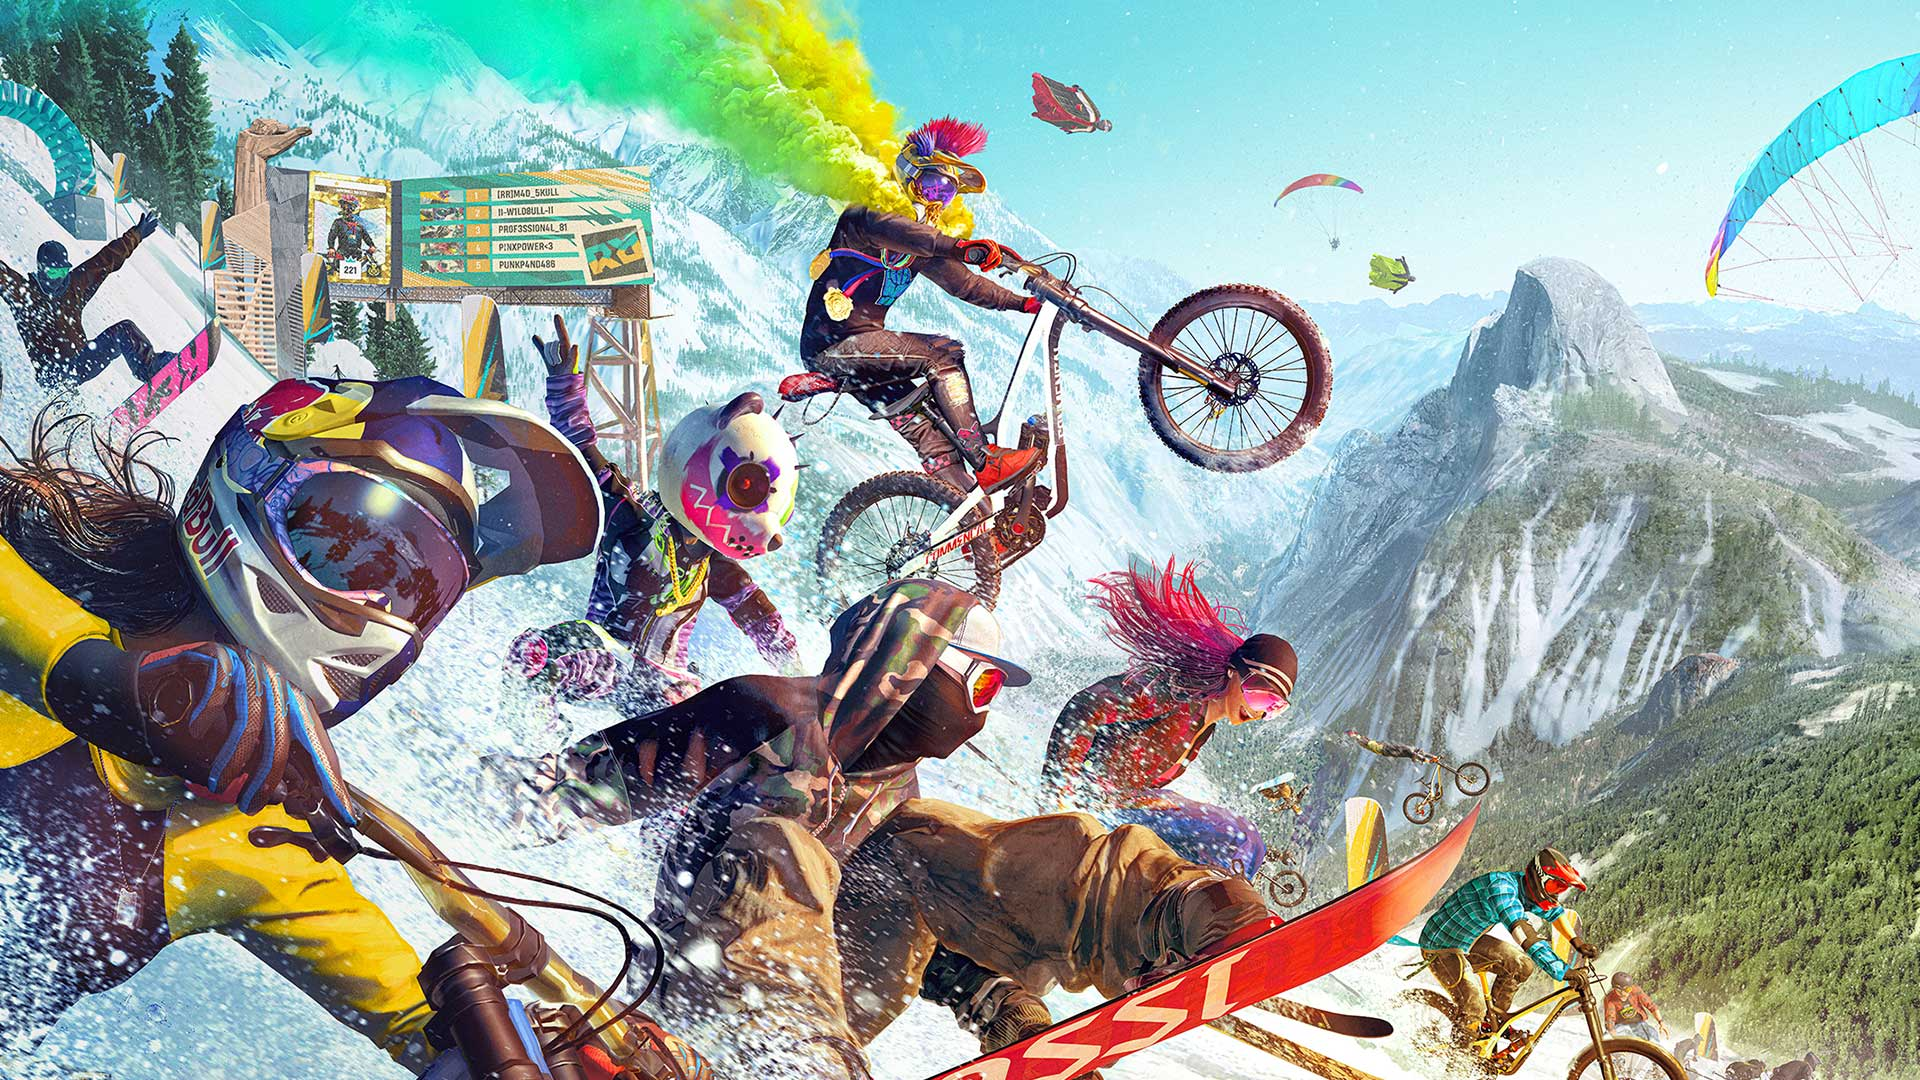 Artwork of bikers, snowboarders, and wingsuit riders from Ubisoft's Riders Republic